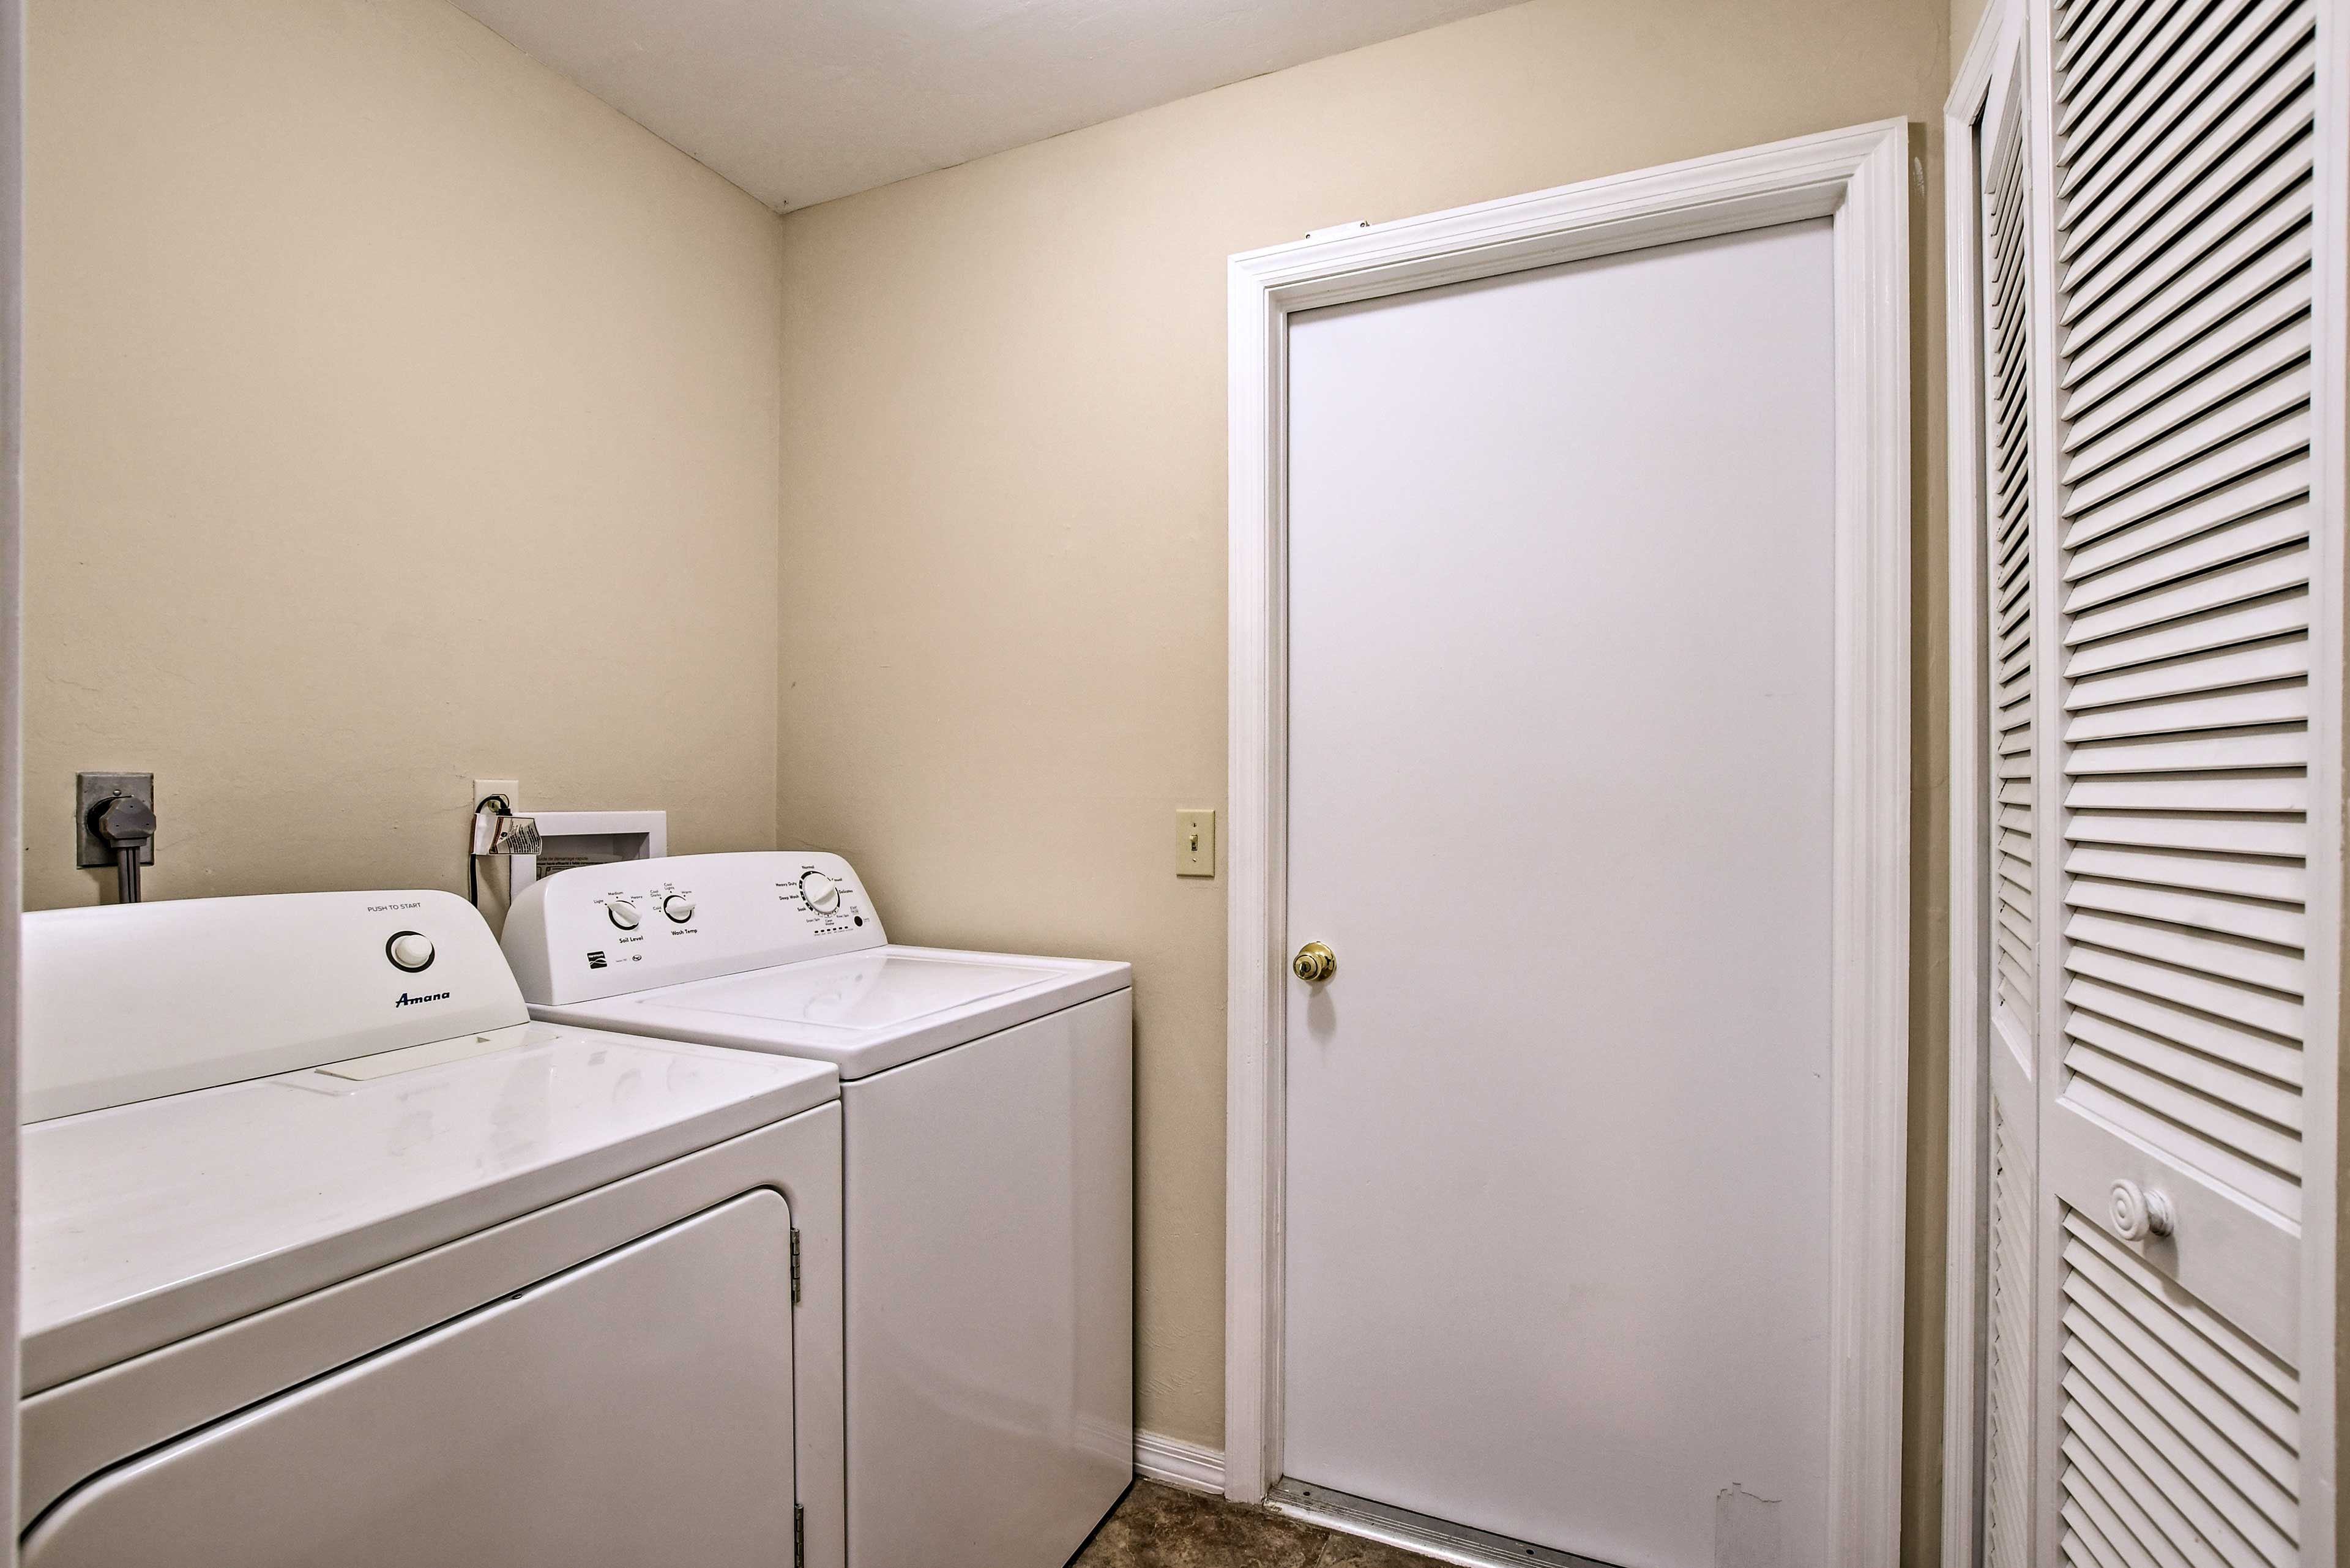 Keep your clothes fresh and clean with the washer and dryer.